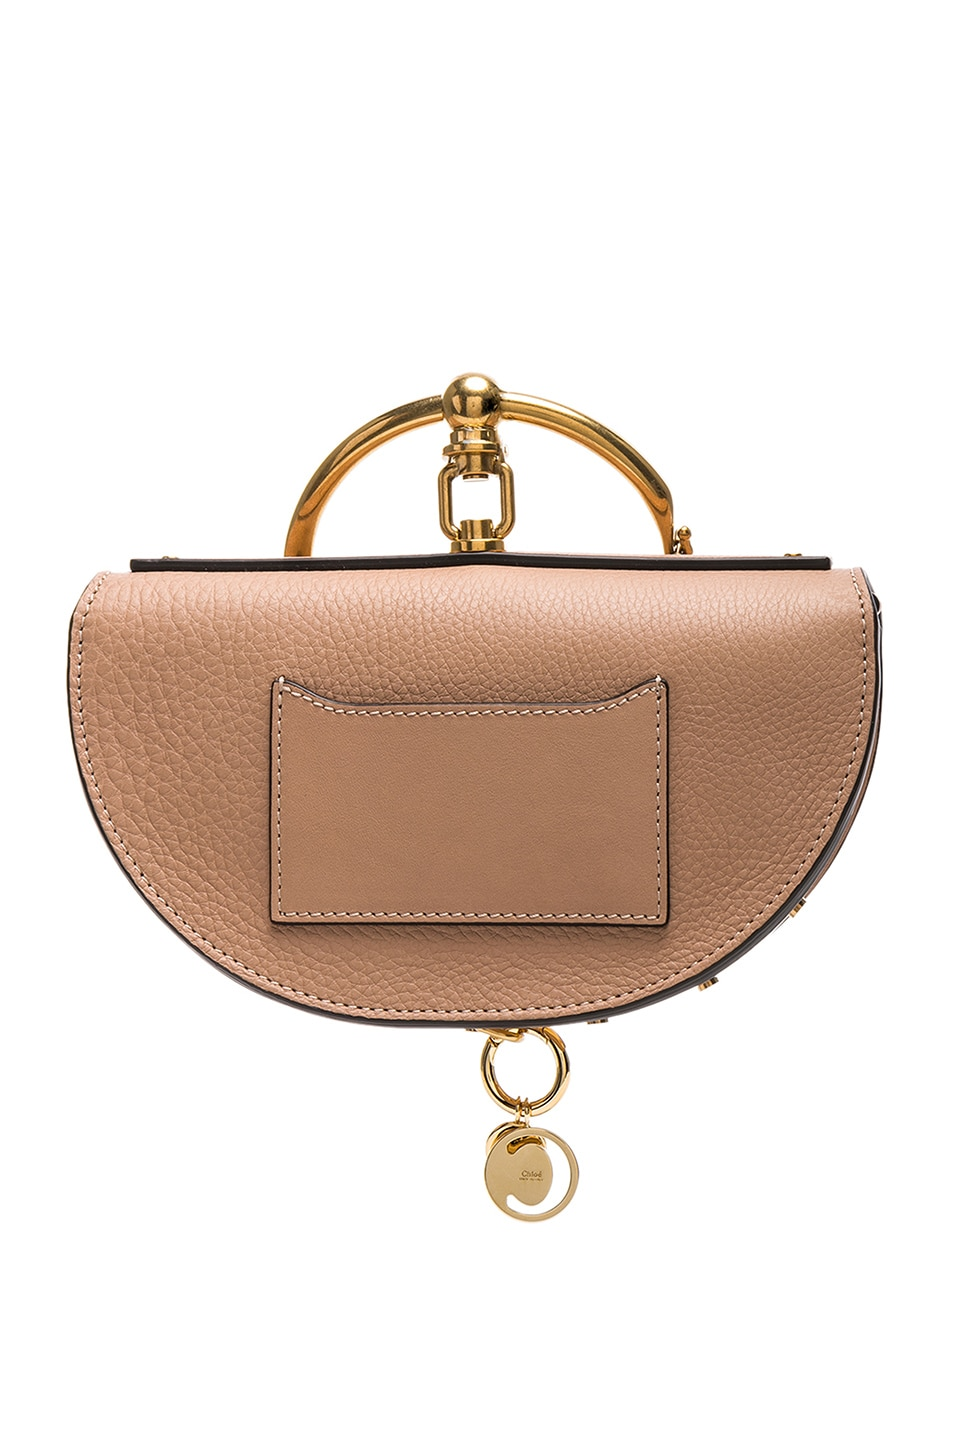 Image 3 of Chloe Small Nile Leather Minaudiere in Biscotti Beige